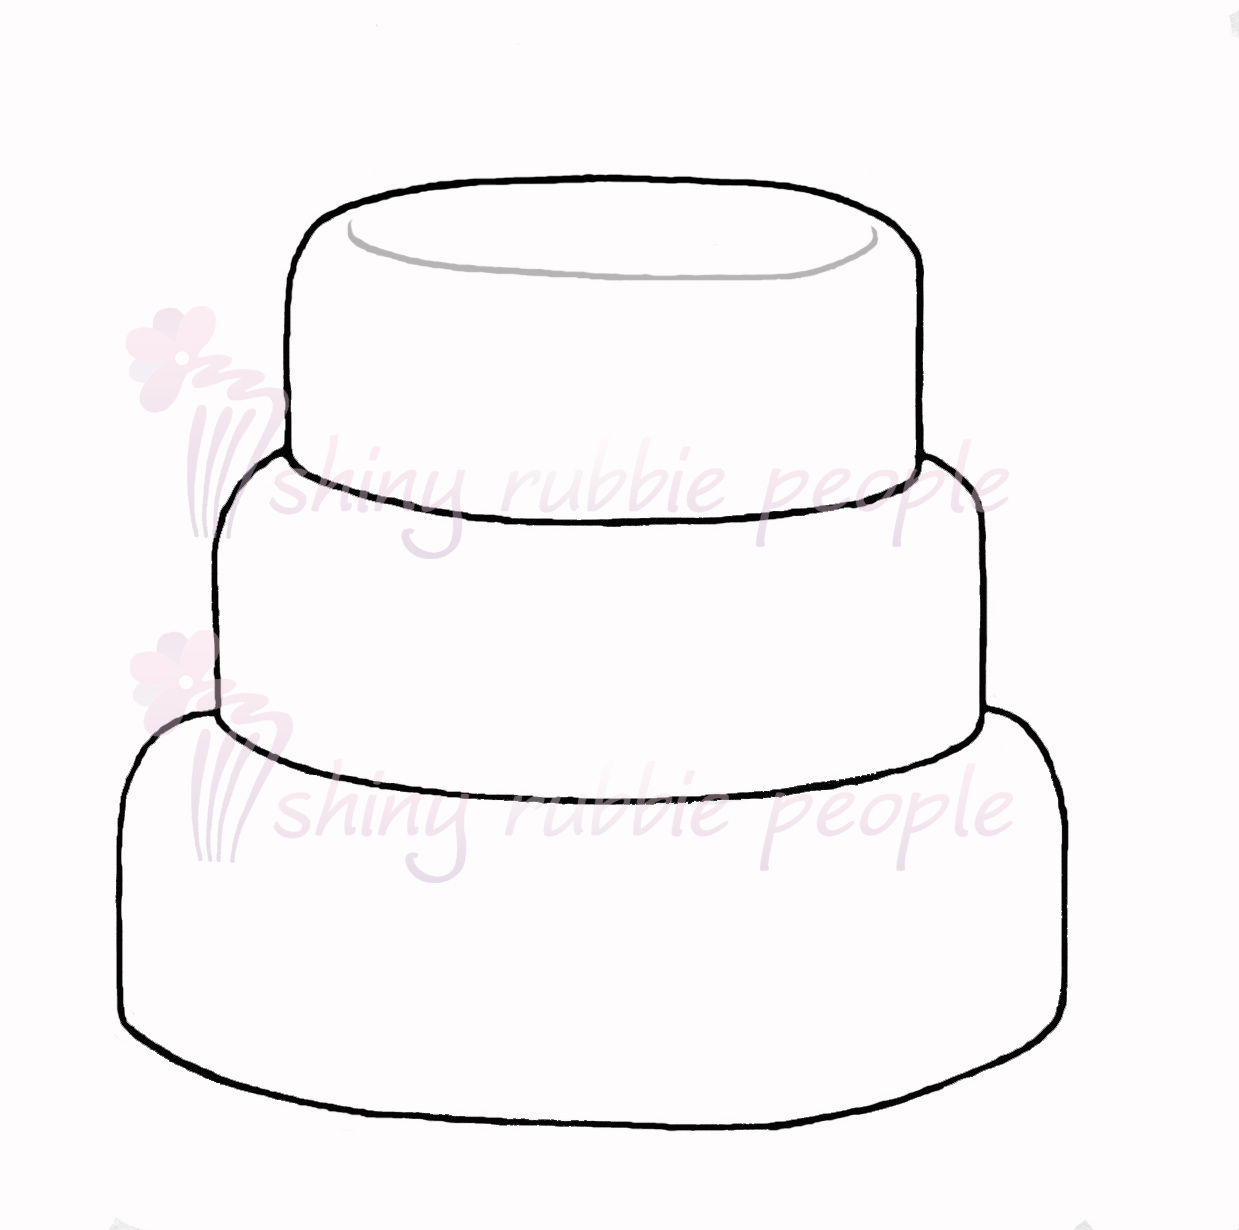 Free Clip Art Layer Cake : Clip Art Black And White Tiered Cake Clipart - Clipart Suggest